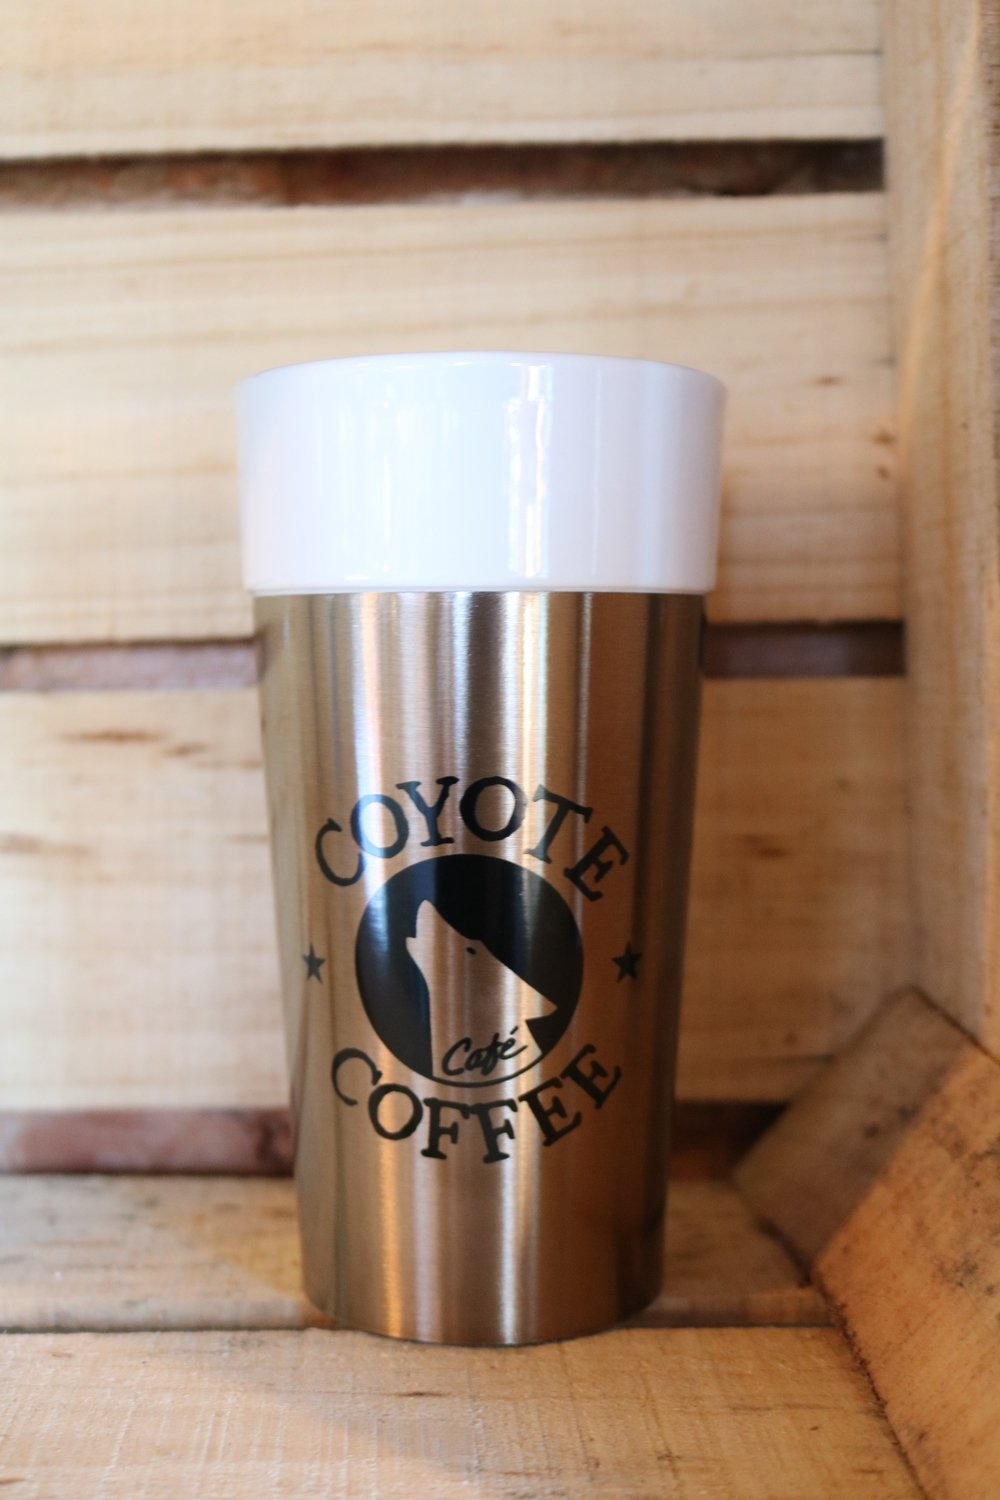 Coyote Coffee Rose Gold Porcelain Tumbler